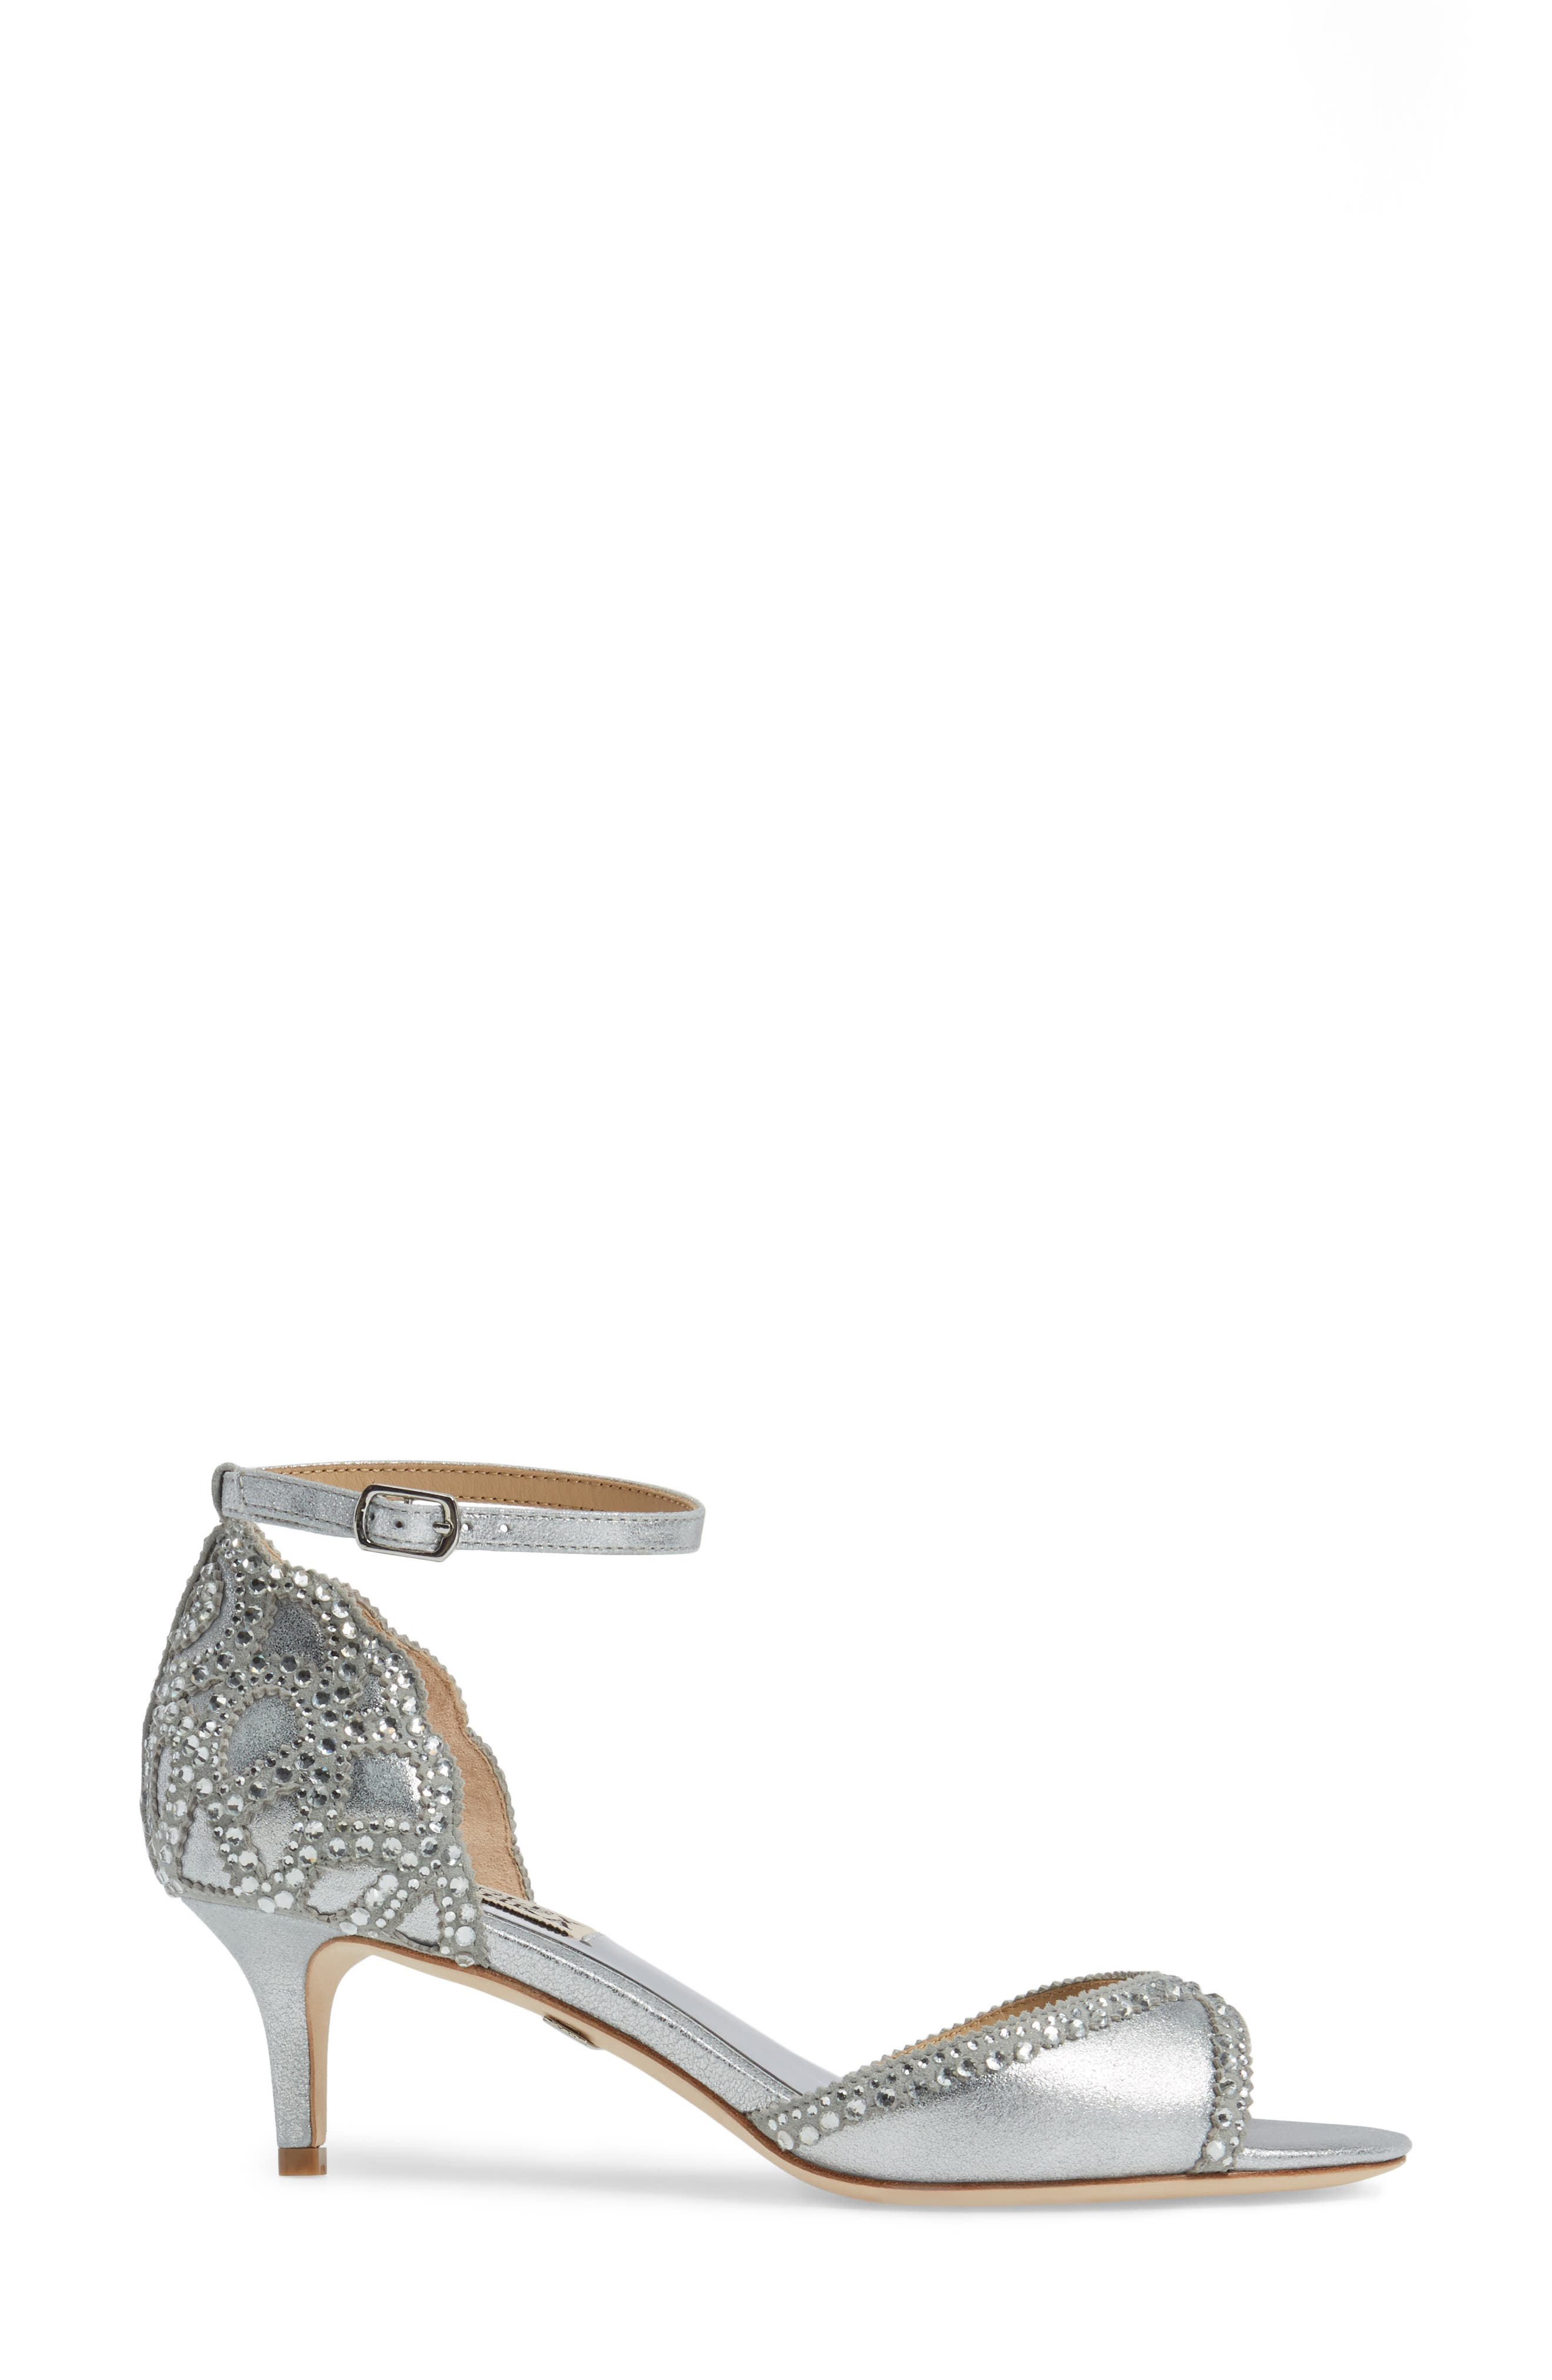 'Gillian' Crystal Embellished d'Orsay Sandal,                             Alternate thumbnail 3, color,                             SILVER METALLIC SUEDE